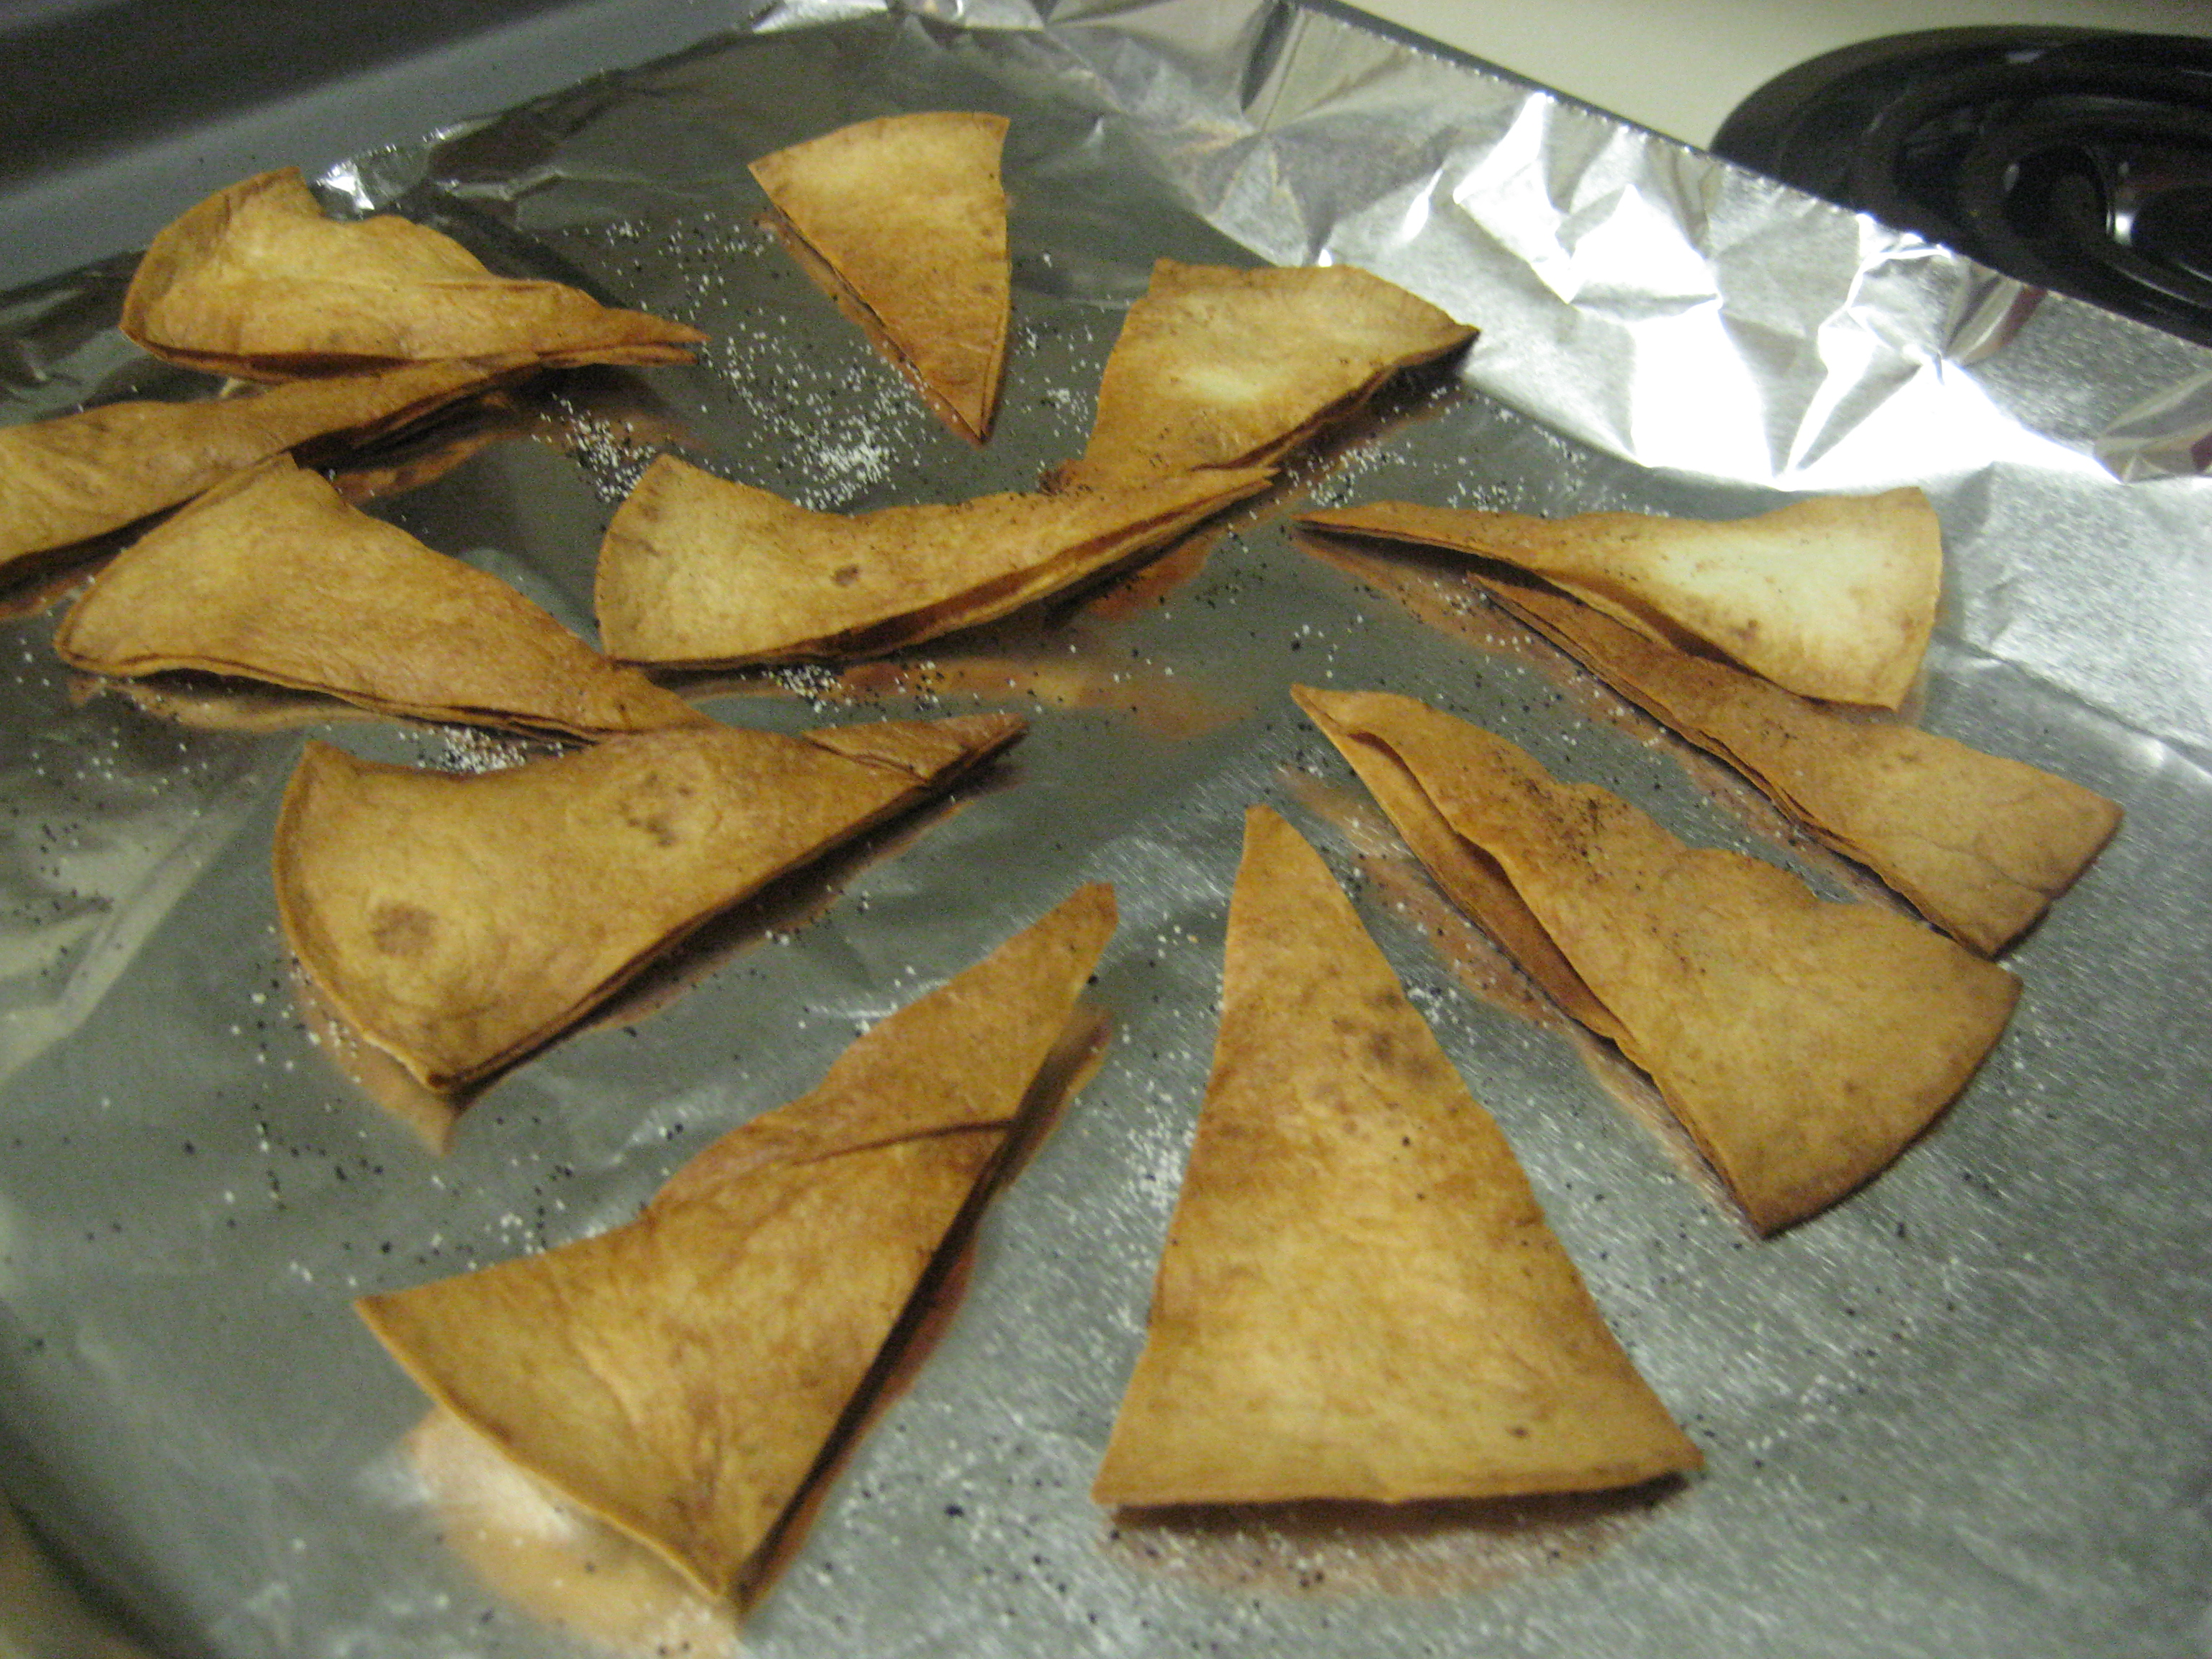 Baked tortilla chips.